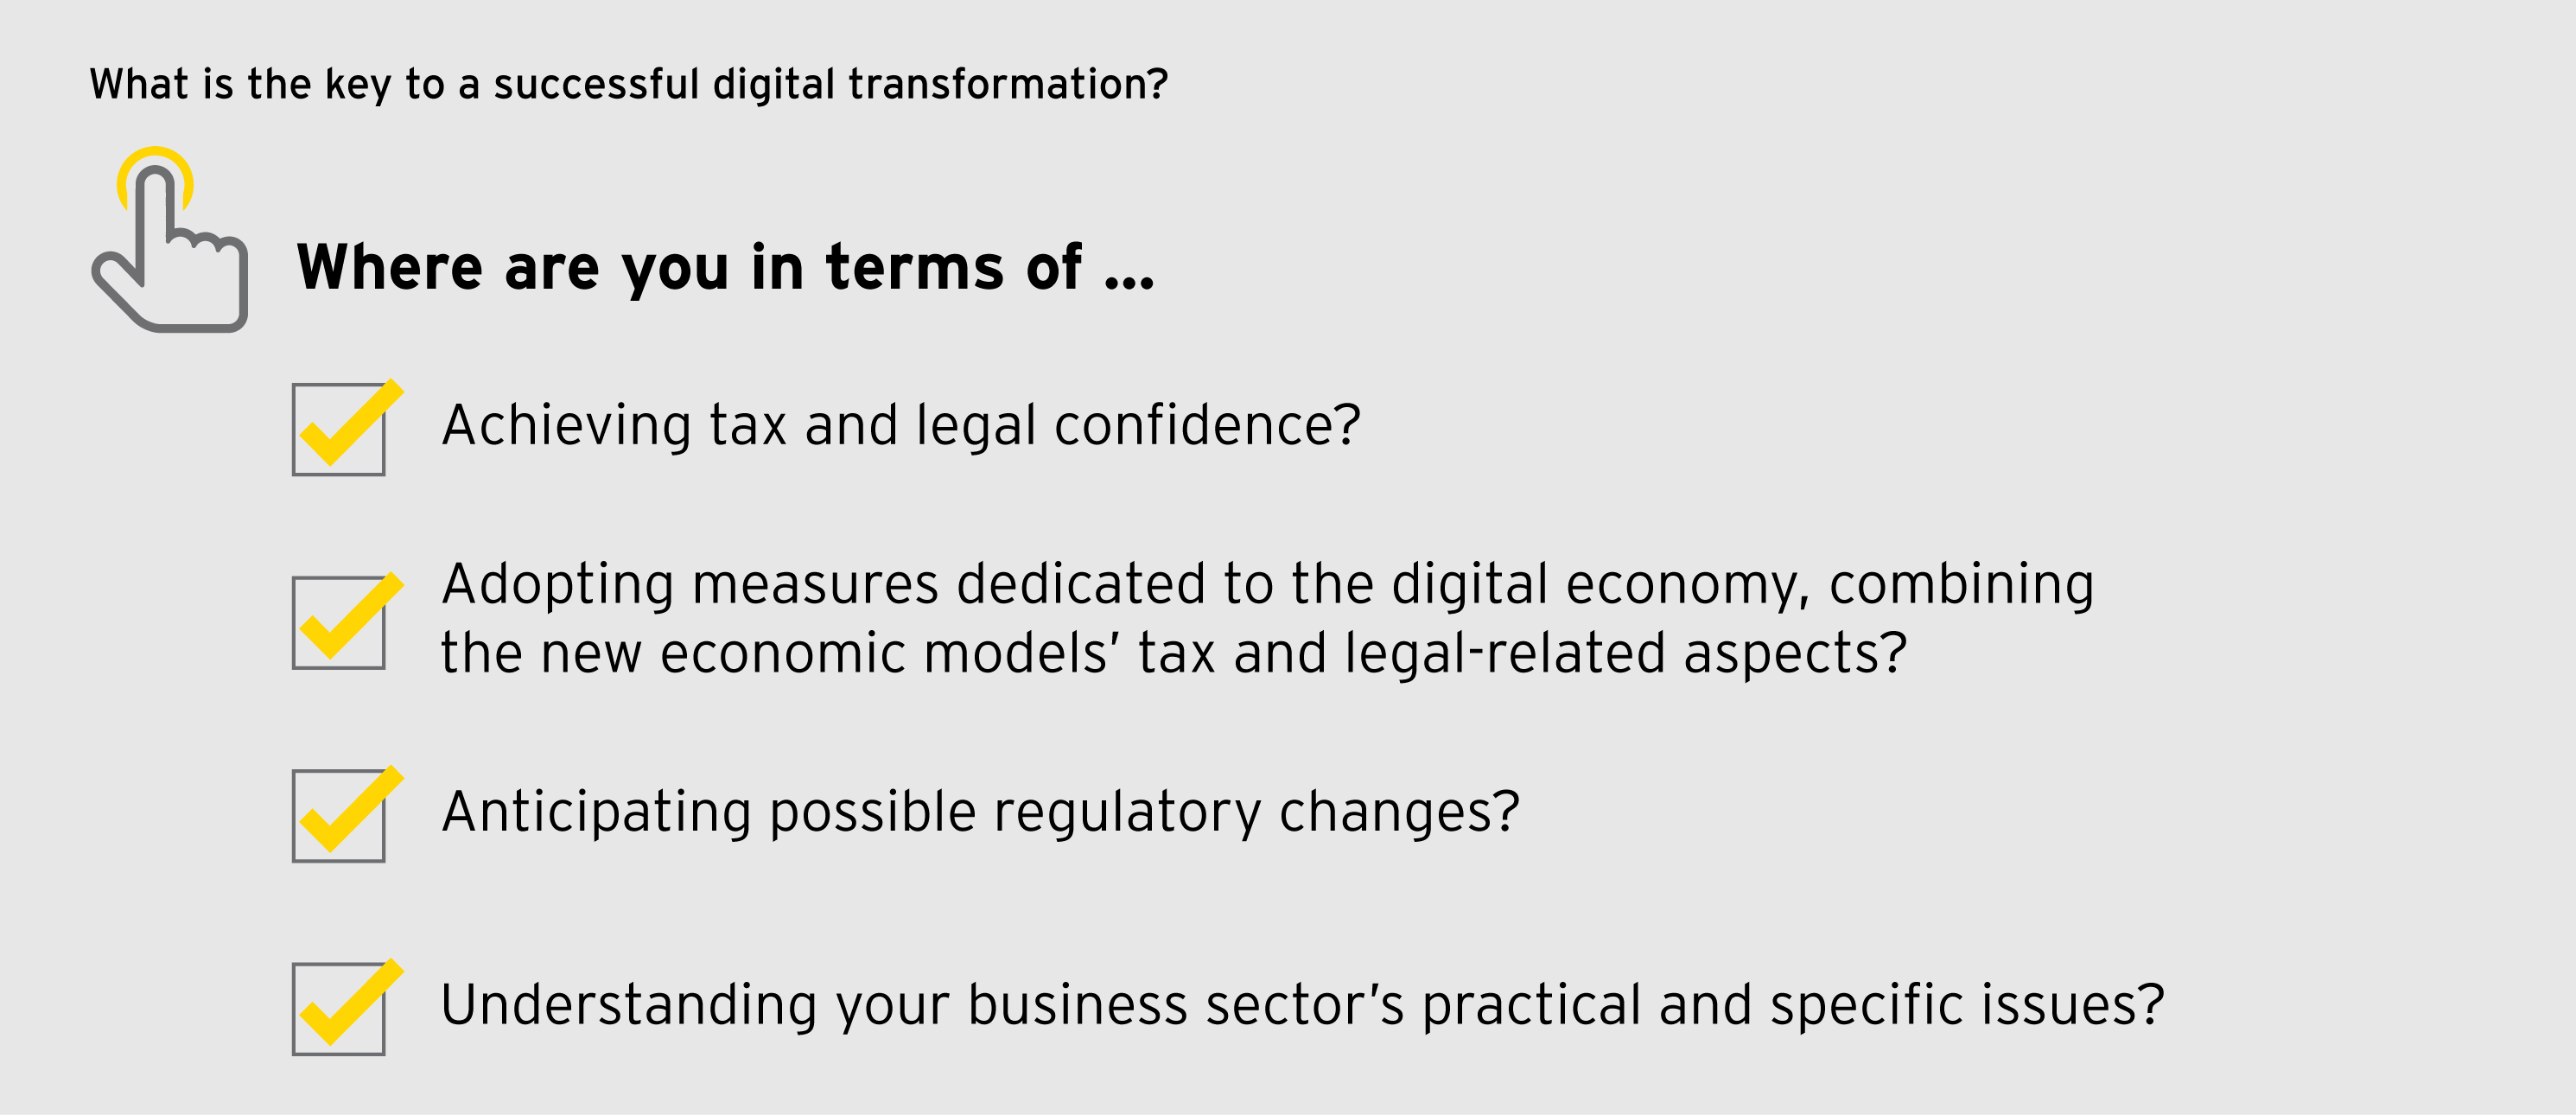 EY - What is the key to a successful digital transformation?